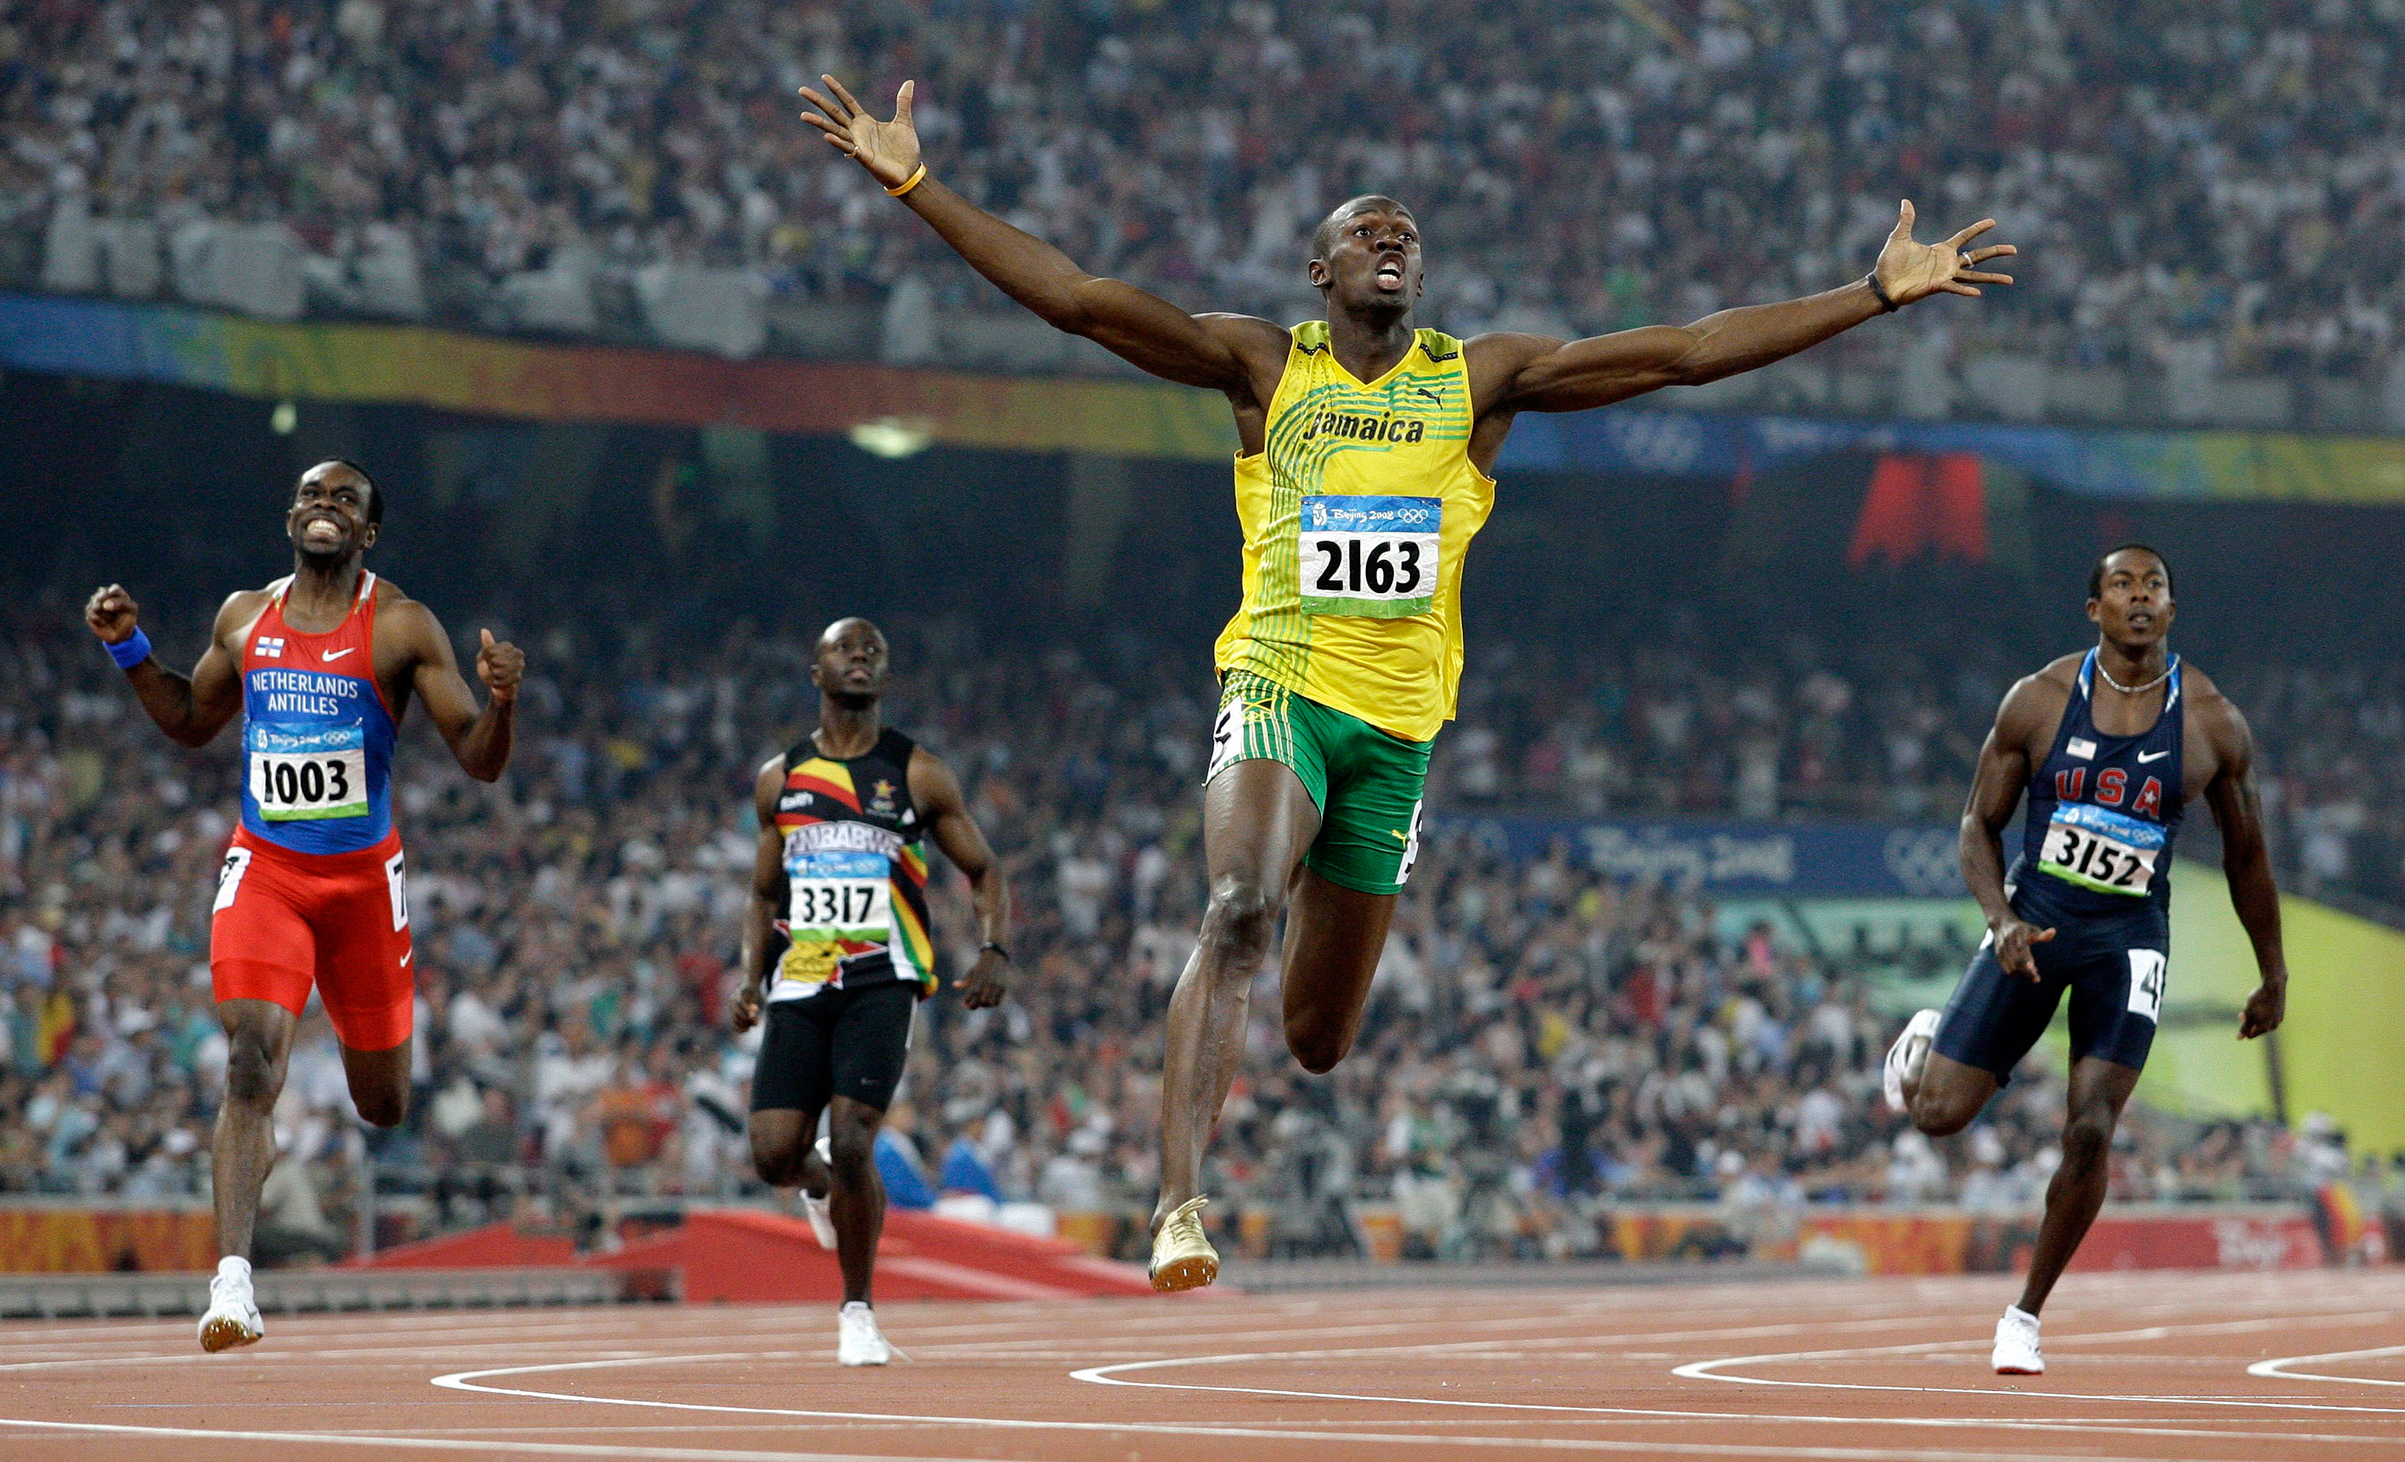 Jamaica's Usain Bolt crosses the finish line to win the gold in the men's 200-meter final during the athletics competitions in the National Stadium at the Beijing 2008 Olympics, Aug. 20, 2008.